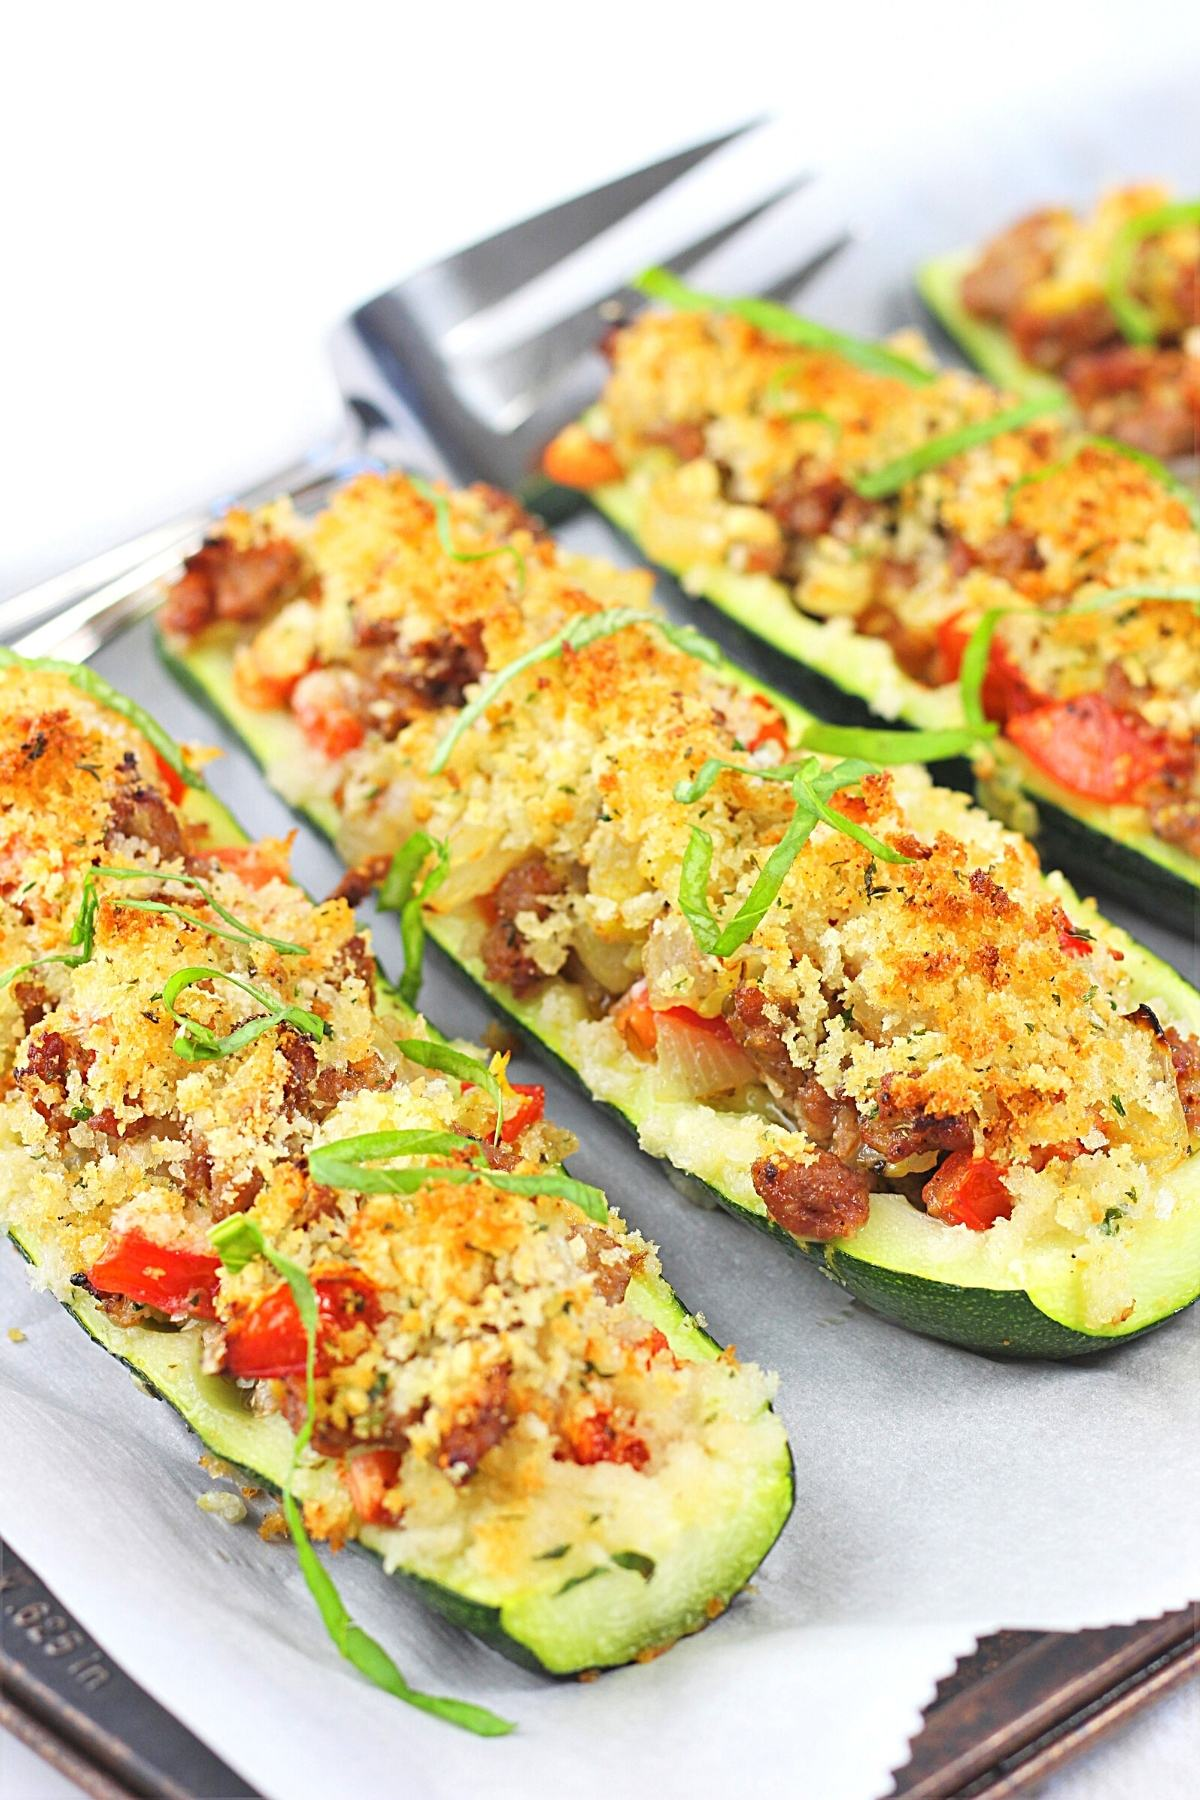 stuffed zucchini boats with sausage and tomatoes on a baking sheet sprinkled with basil with a serving fork on the side